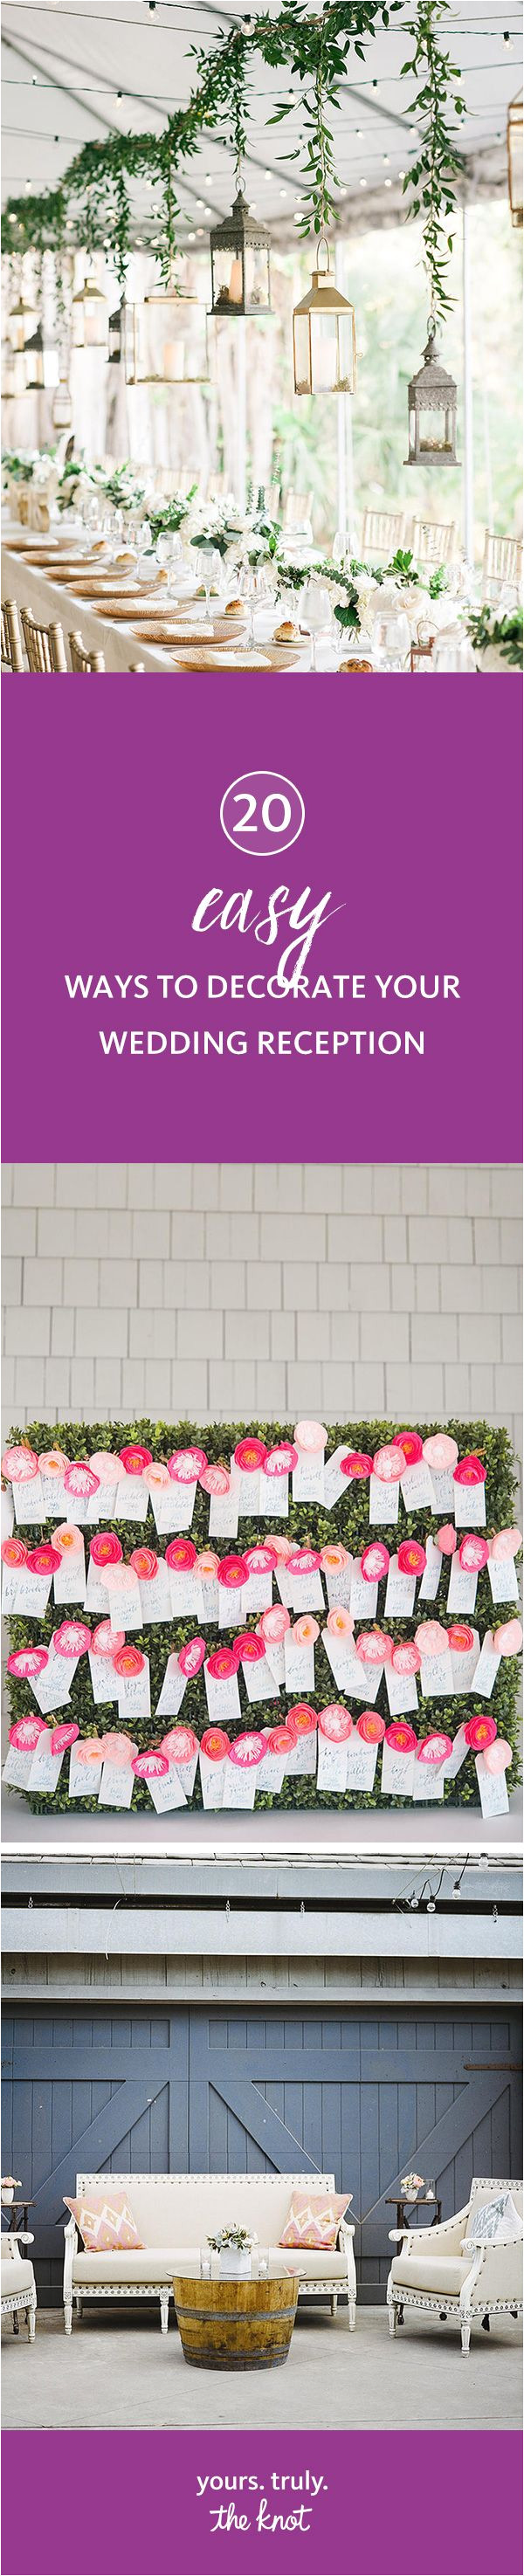 20 easy ways to decorate your wedding reception